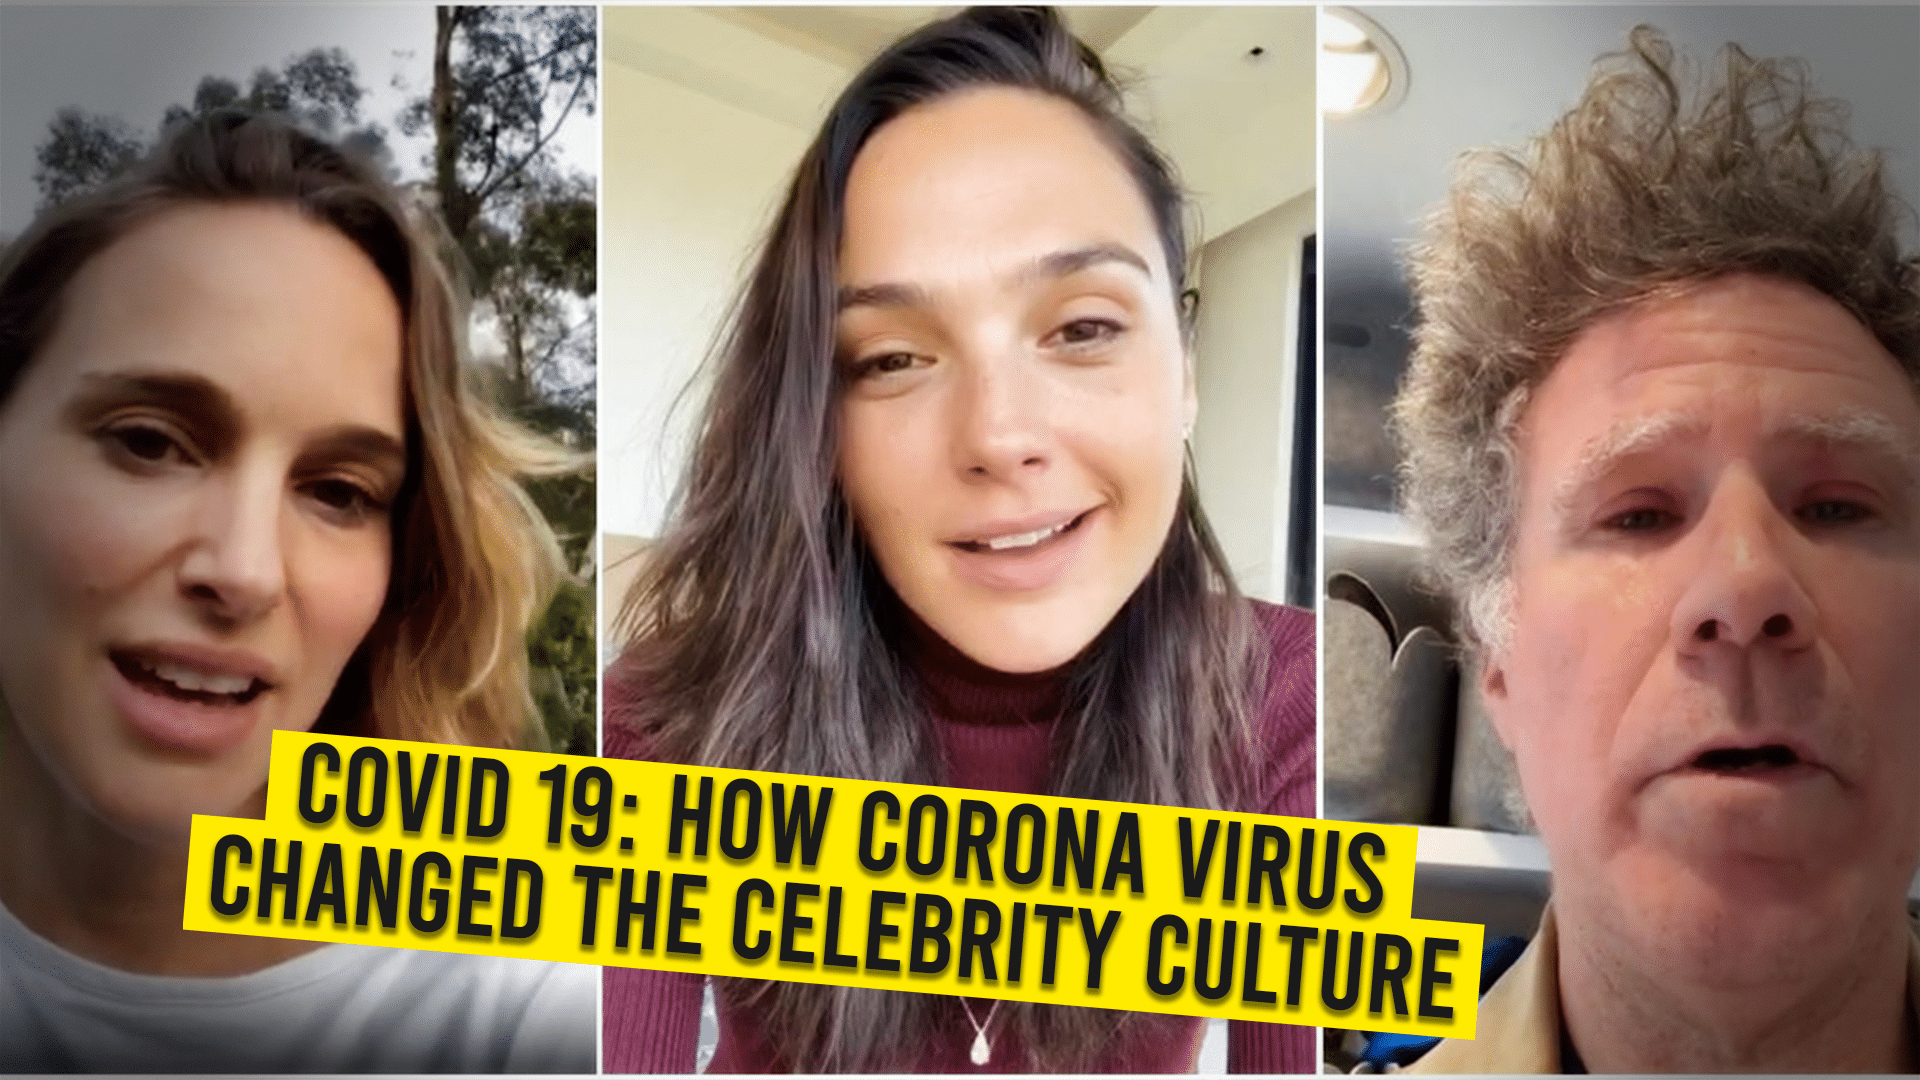 COVID 19: How Corona Virus Changed The Celebrity Culture